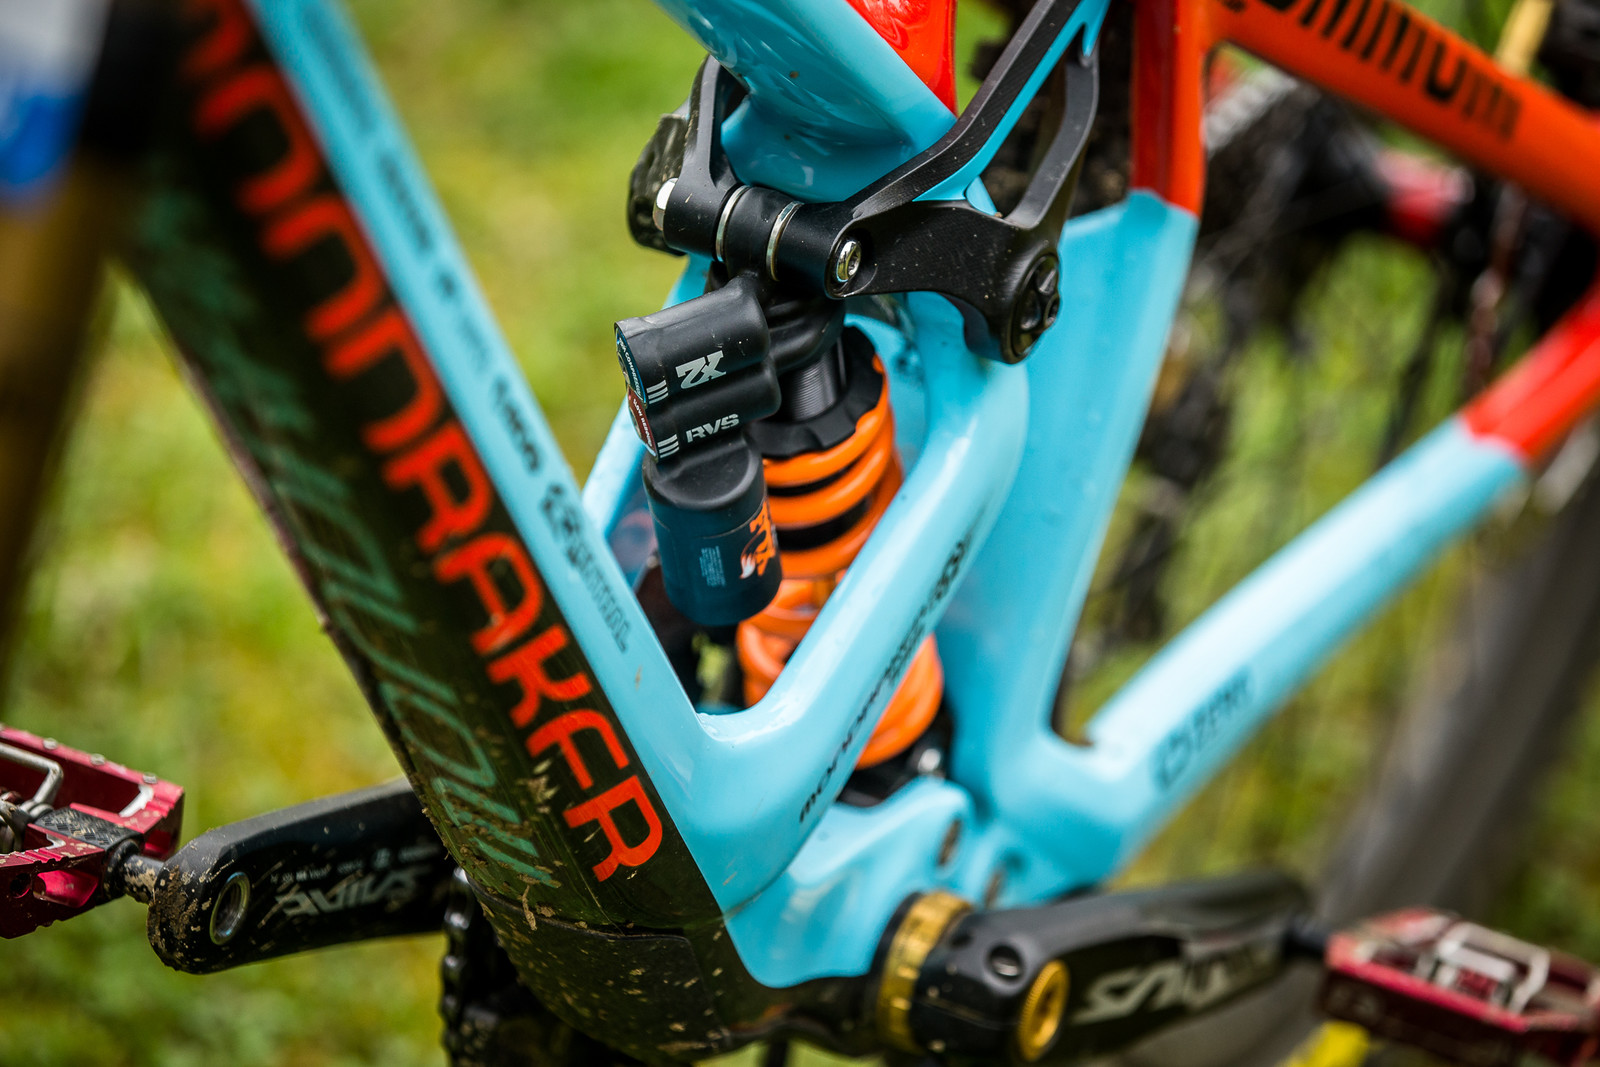 FOX DHX2 Rear Shock - WINNING BIKE - Laurie Greenland's Mondraker Summum - Mountain Biking Pictures - Vital MTB